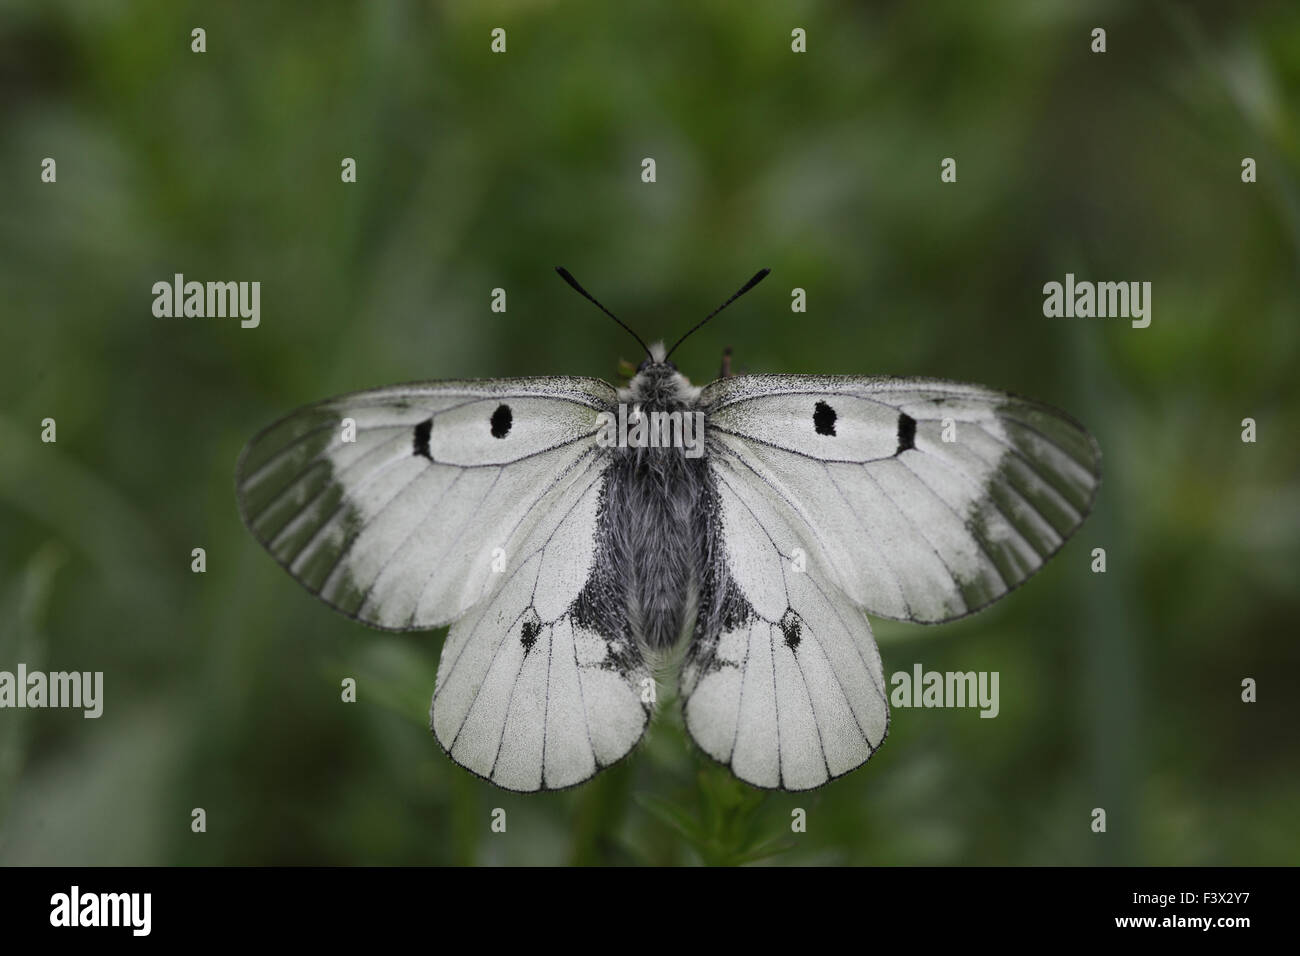 at rest with wings open Hungary May 2015 - Stock Image